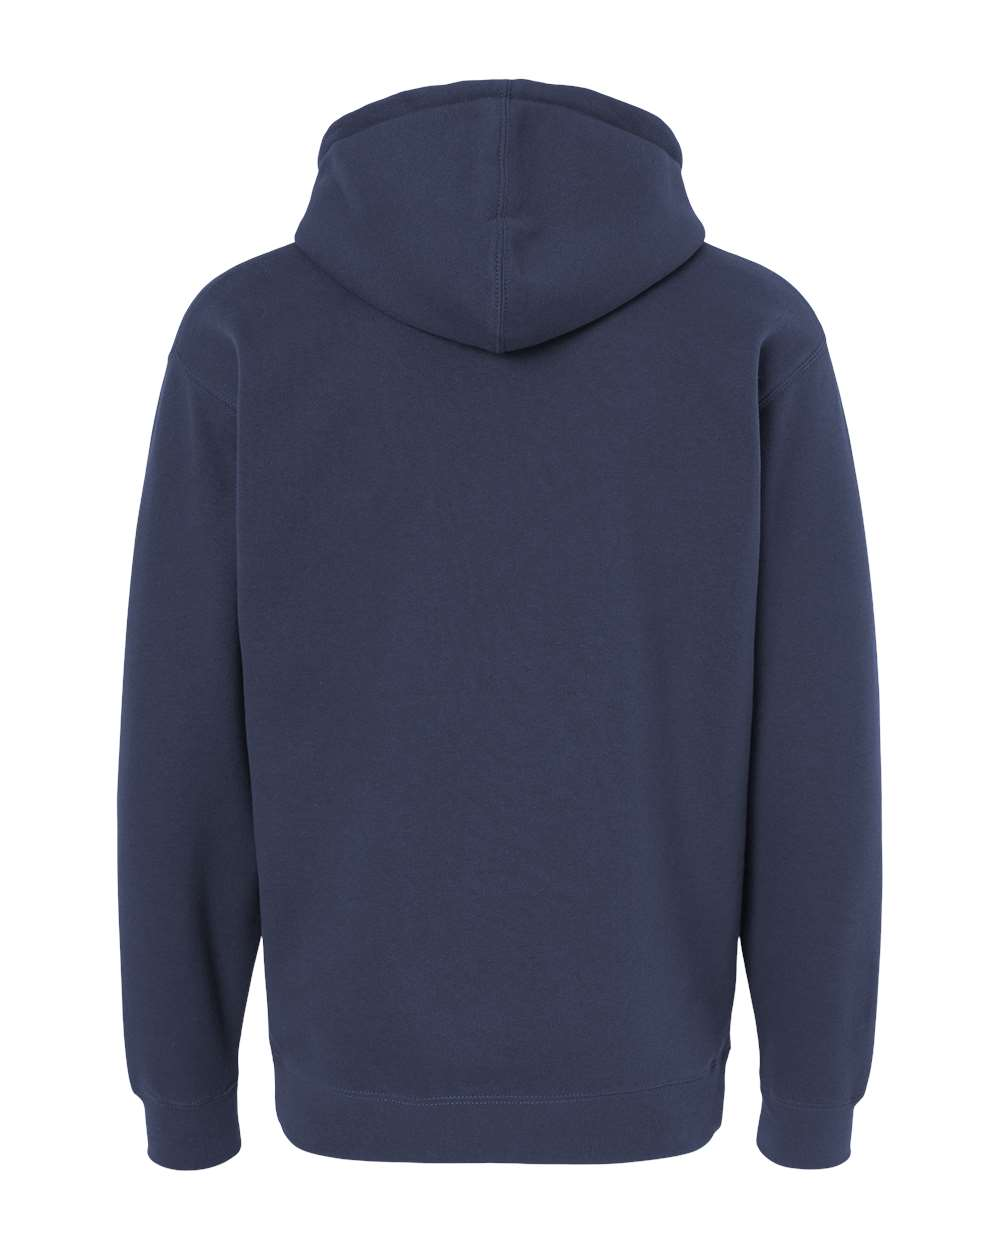 Independent-Trading-Co-Mens-Hooded-Pullover-Sweatshirt-IND4000-up-to-3XL miniature 34